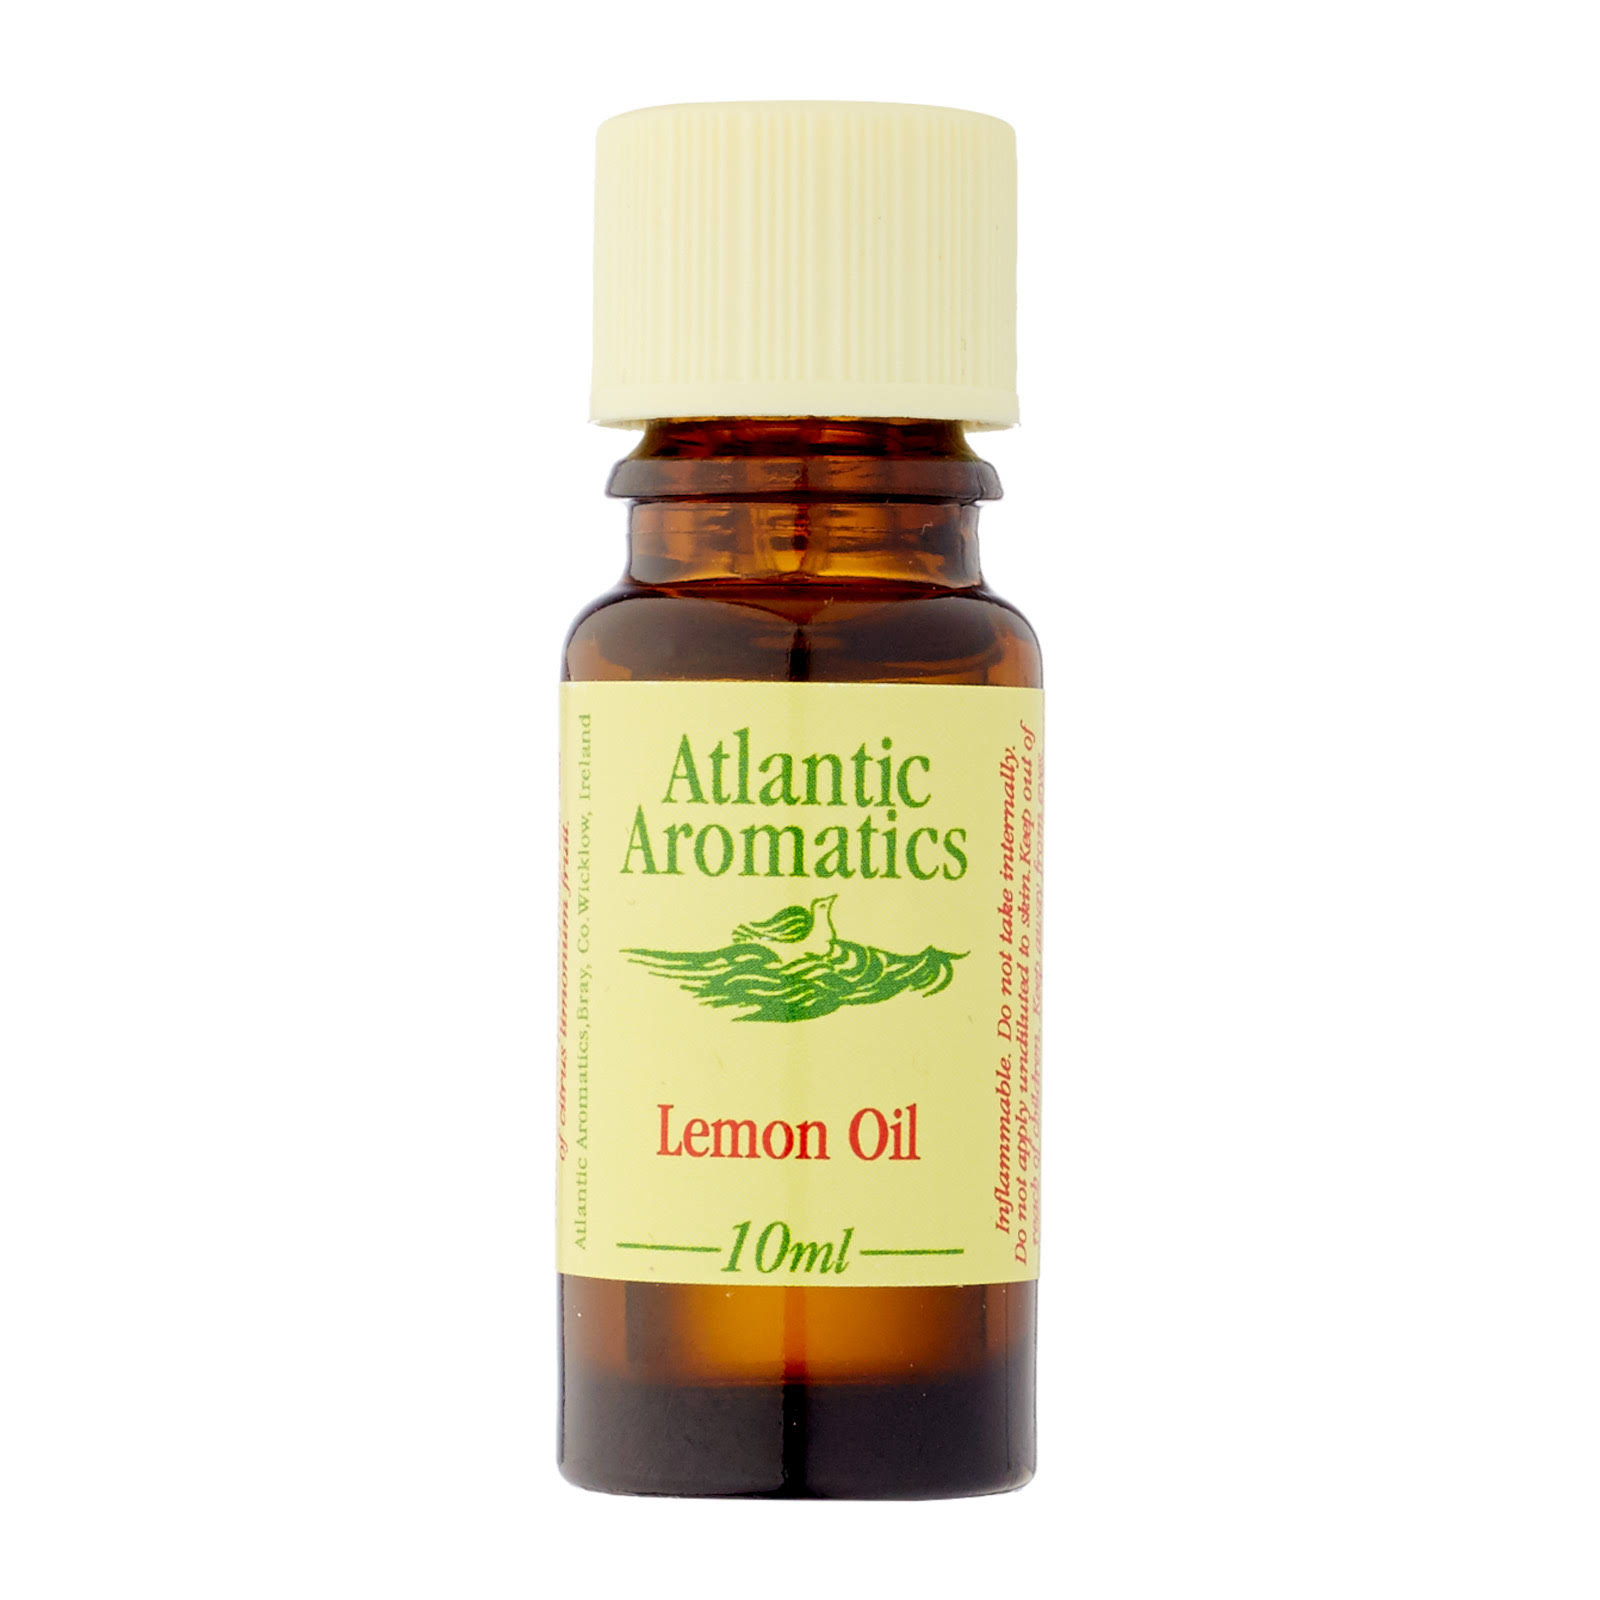 Atlantic Aromatics Lemon Oil